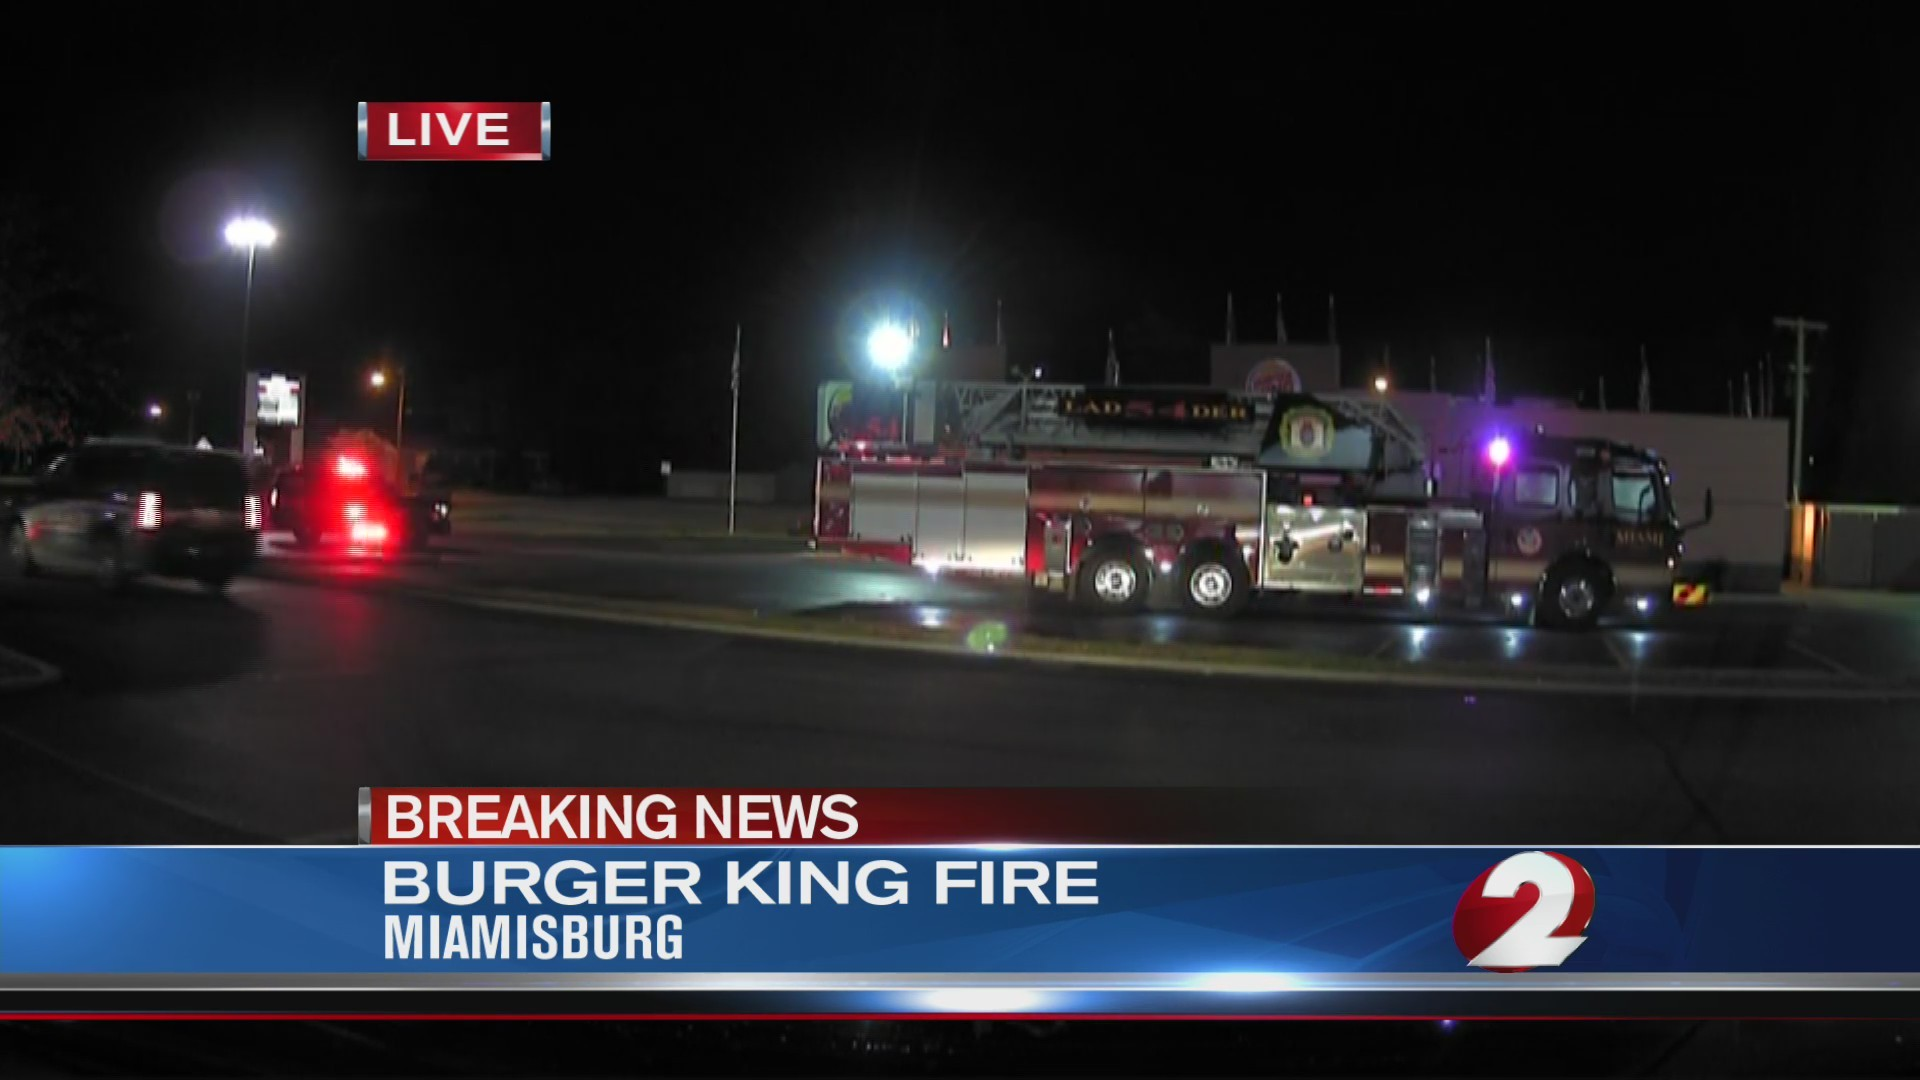 Miamisburg Burger King fire